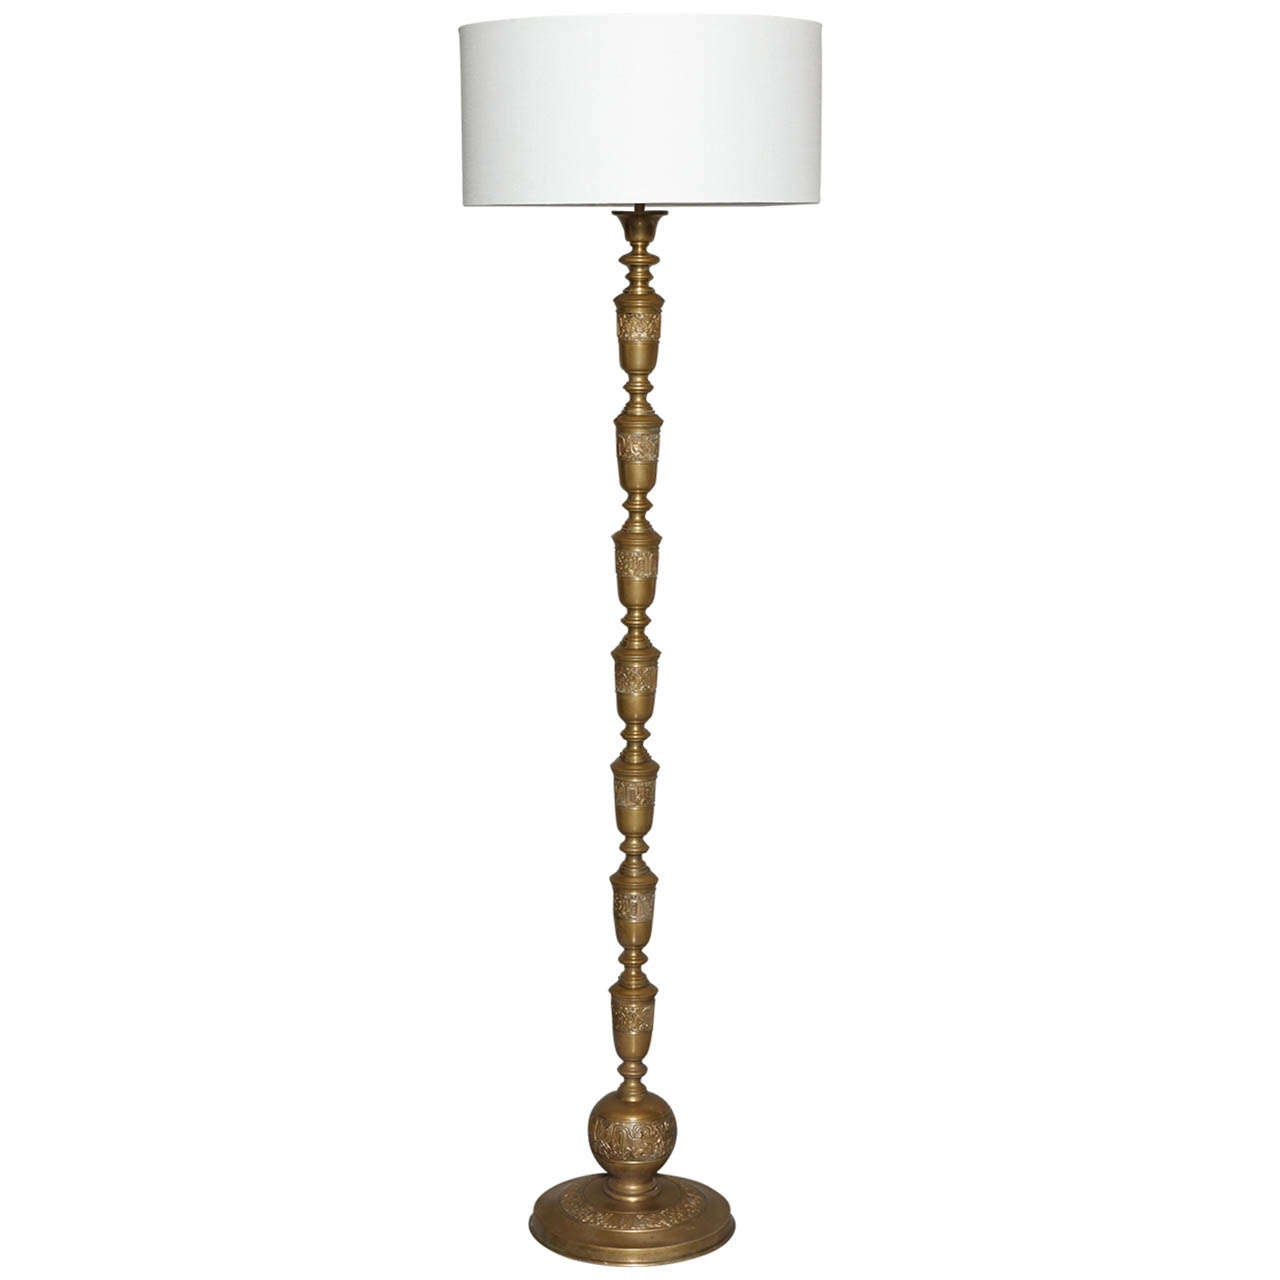 embossed antique brass floor lamp at 1stdibs. Black Bedroom Furniture Sets. Home Design Ideas